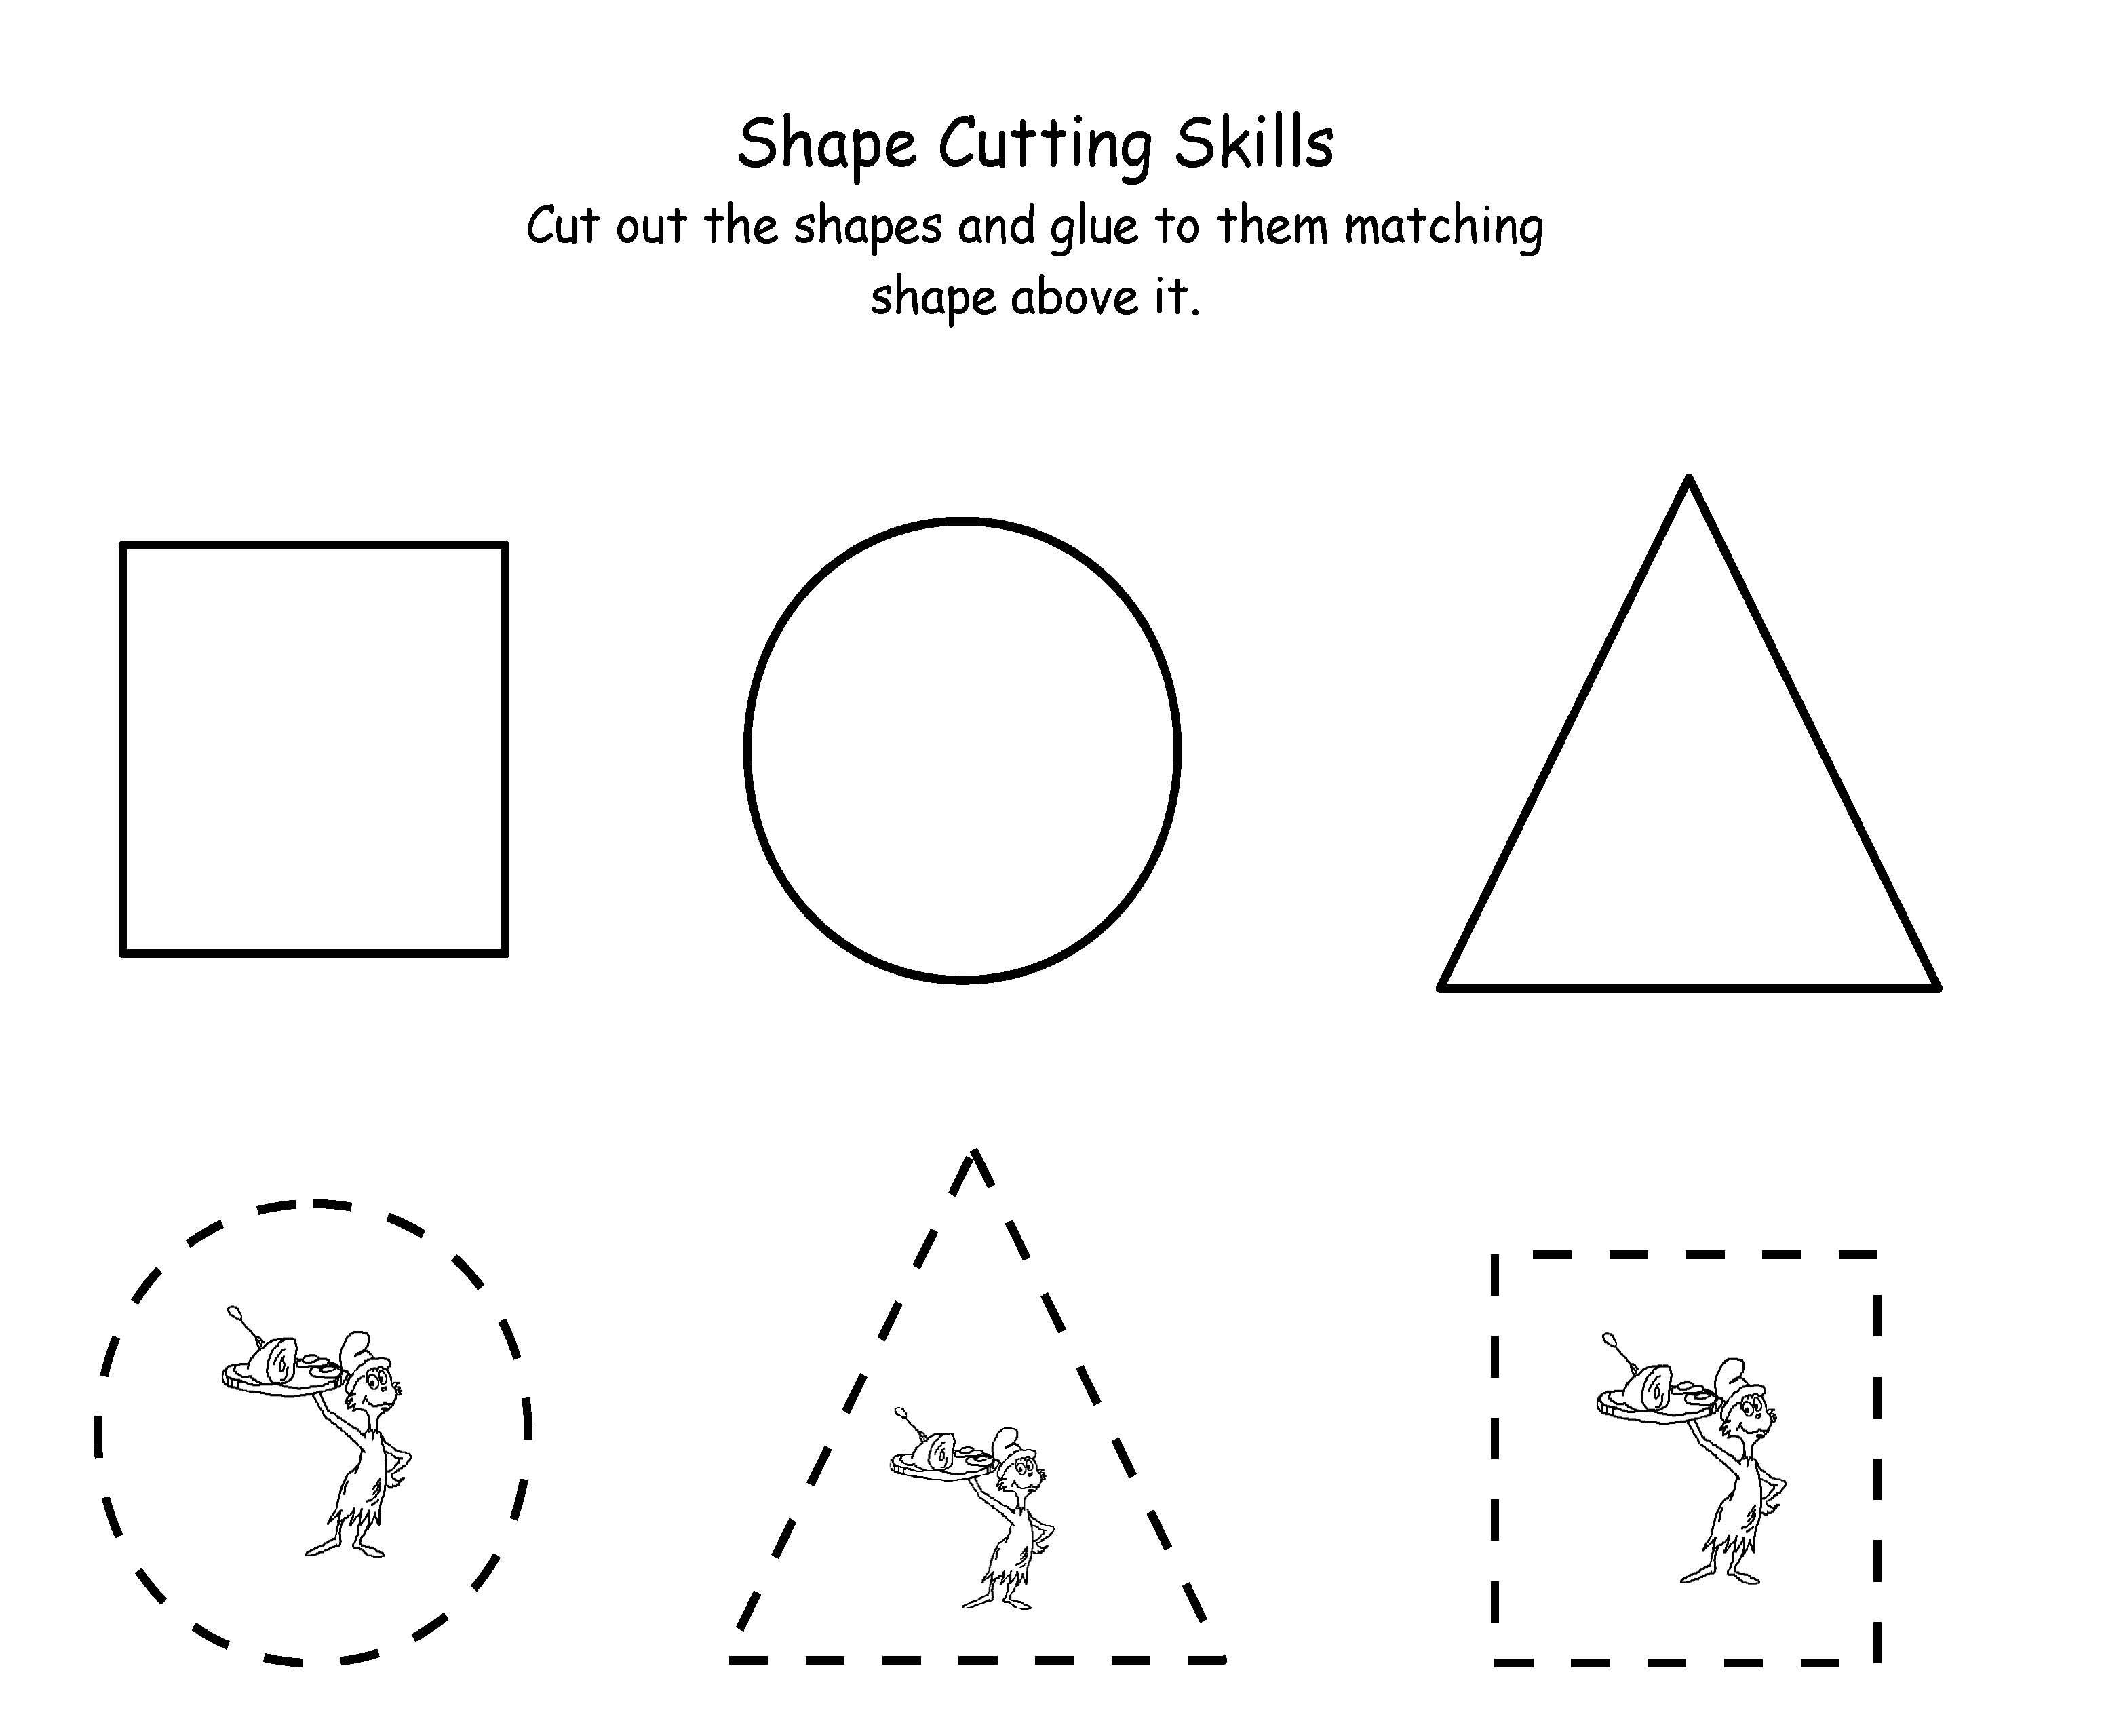 Worksheets Cutting Worksheets For Preschool printable dr seuss cutting maths pinterest scissor skills printablespreschool